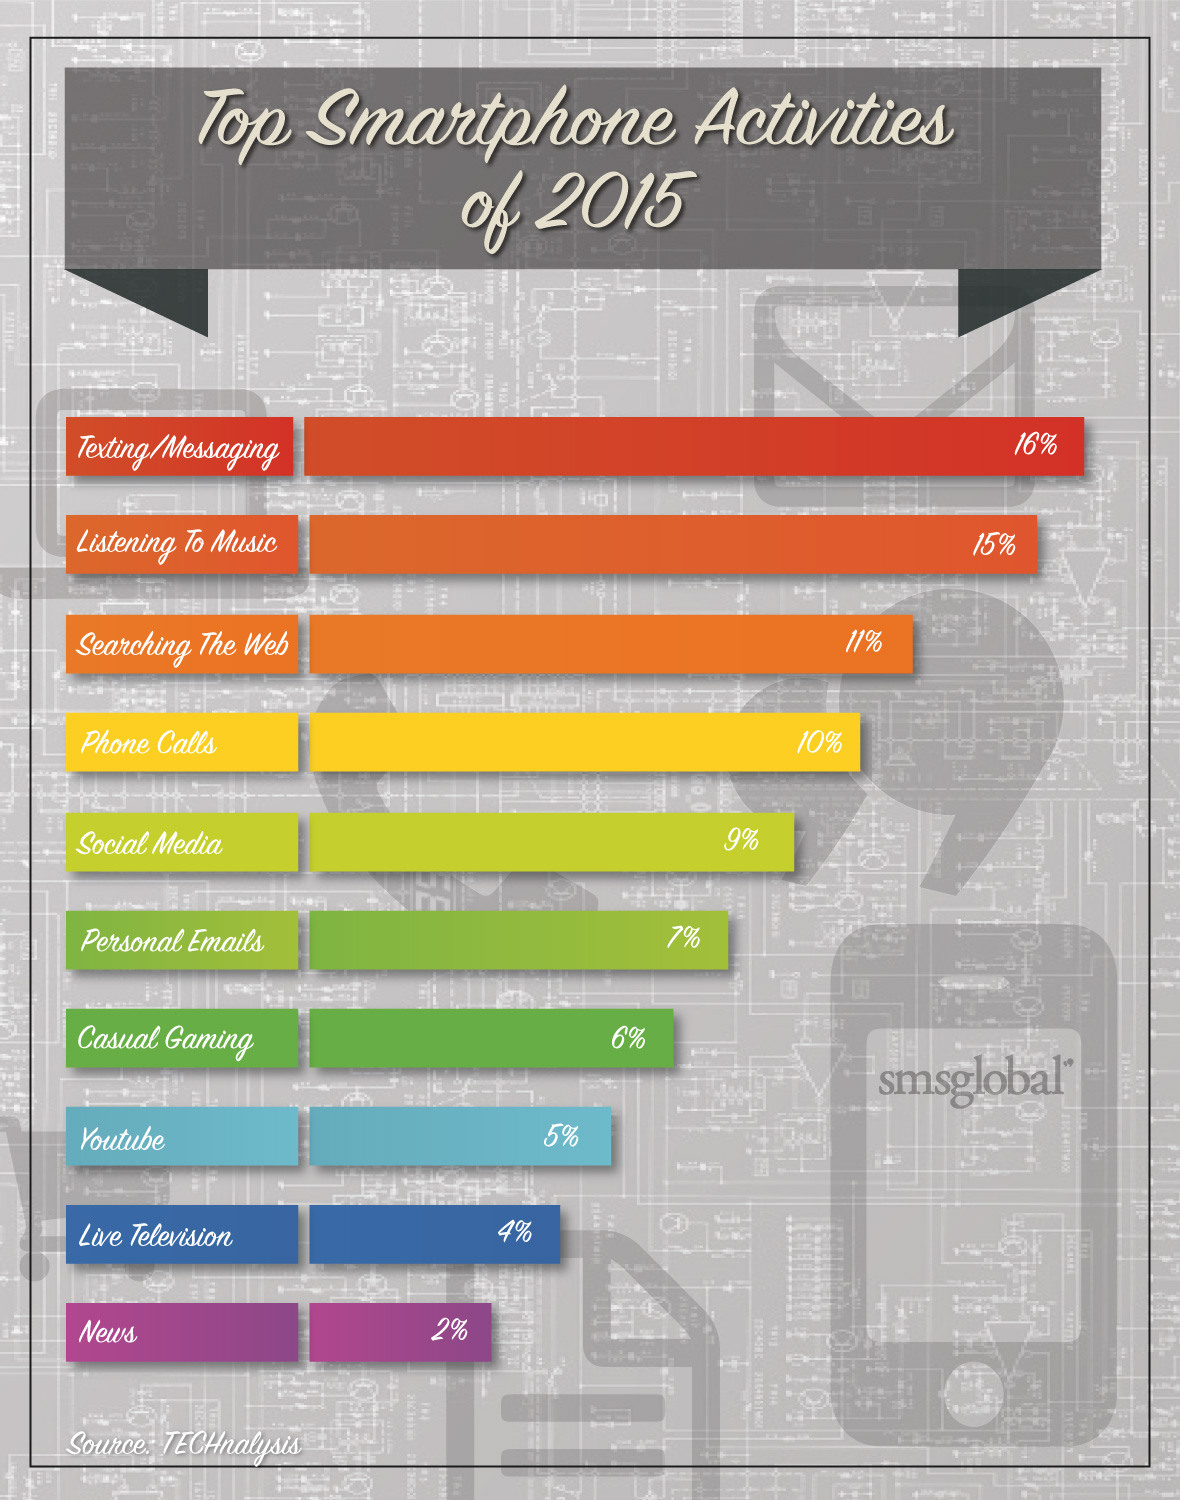 Smartphone Activities 2015 Infographic